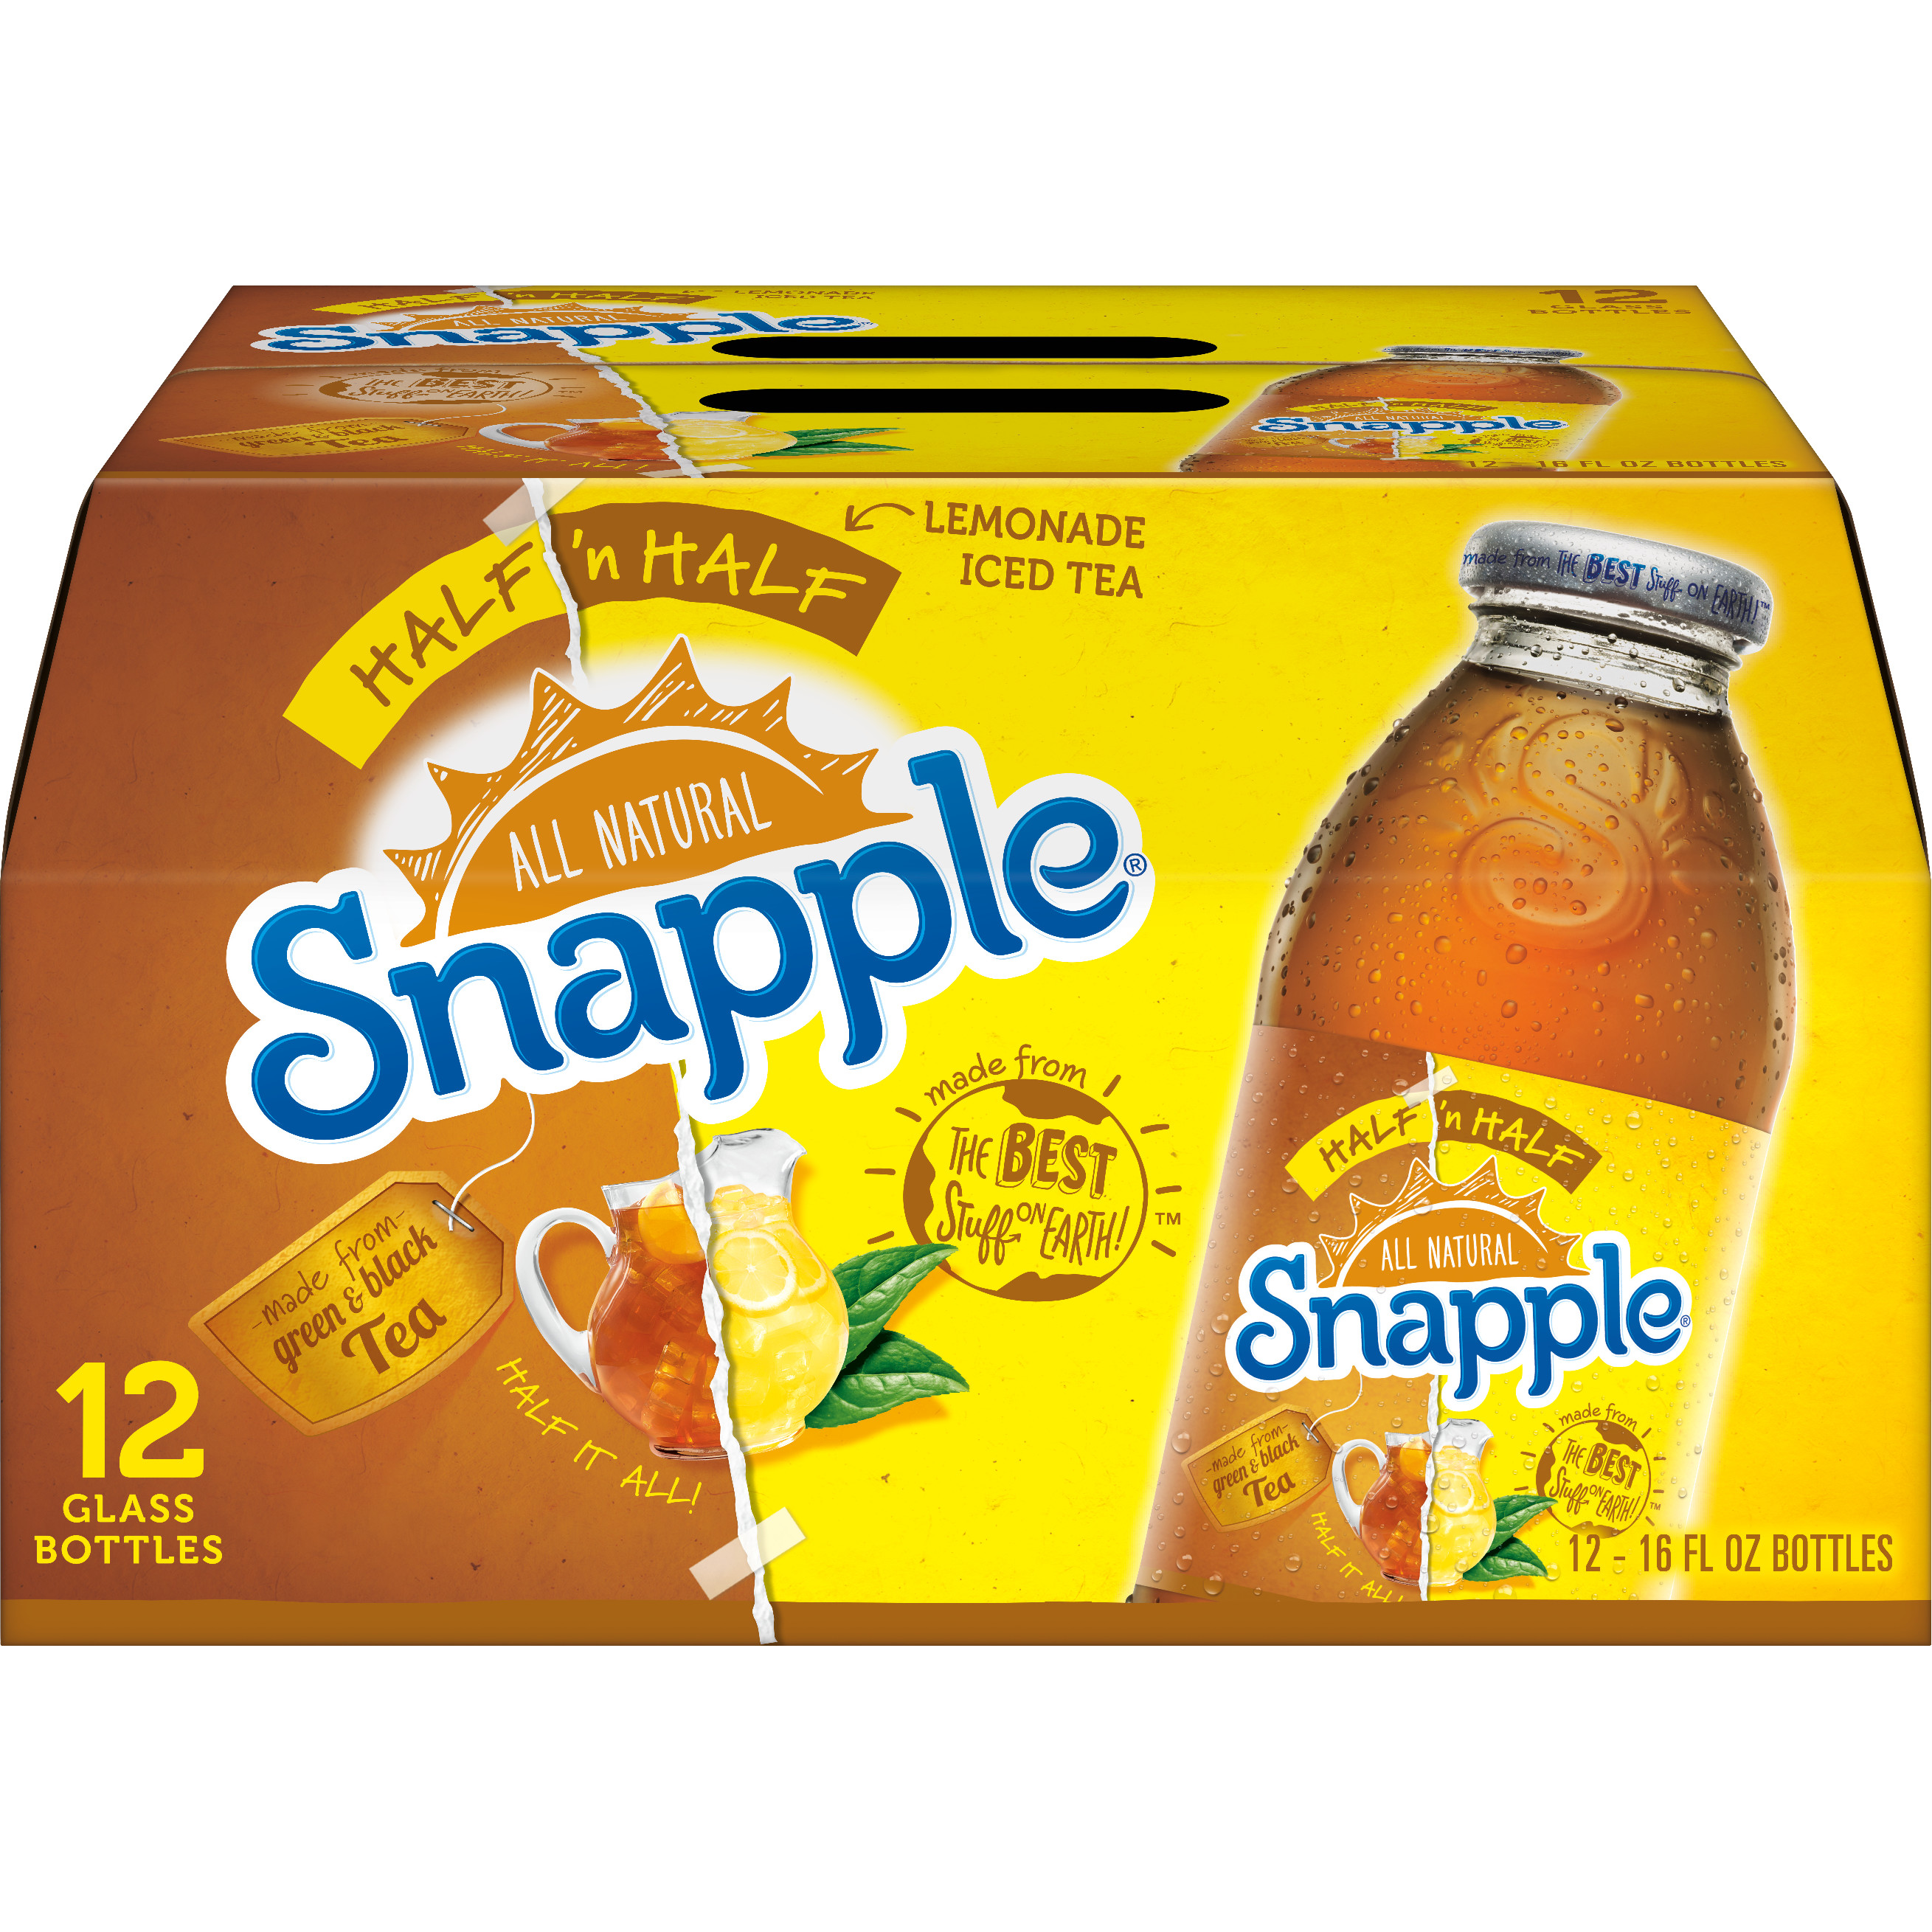 Snapple Half 'n Half, 16 fl oz, 12 pack